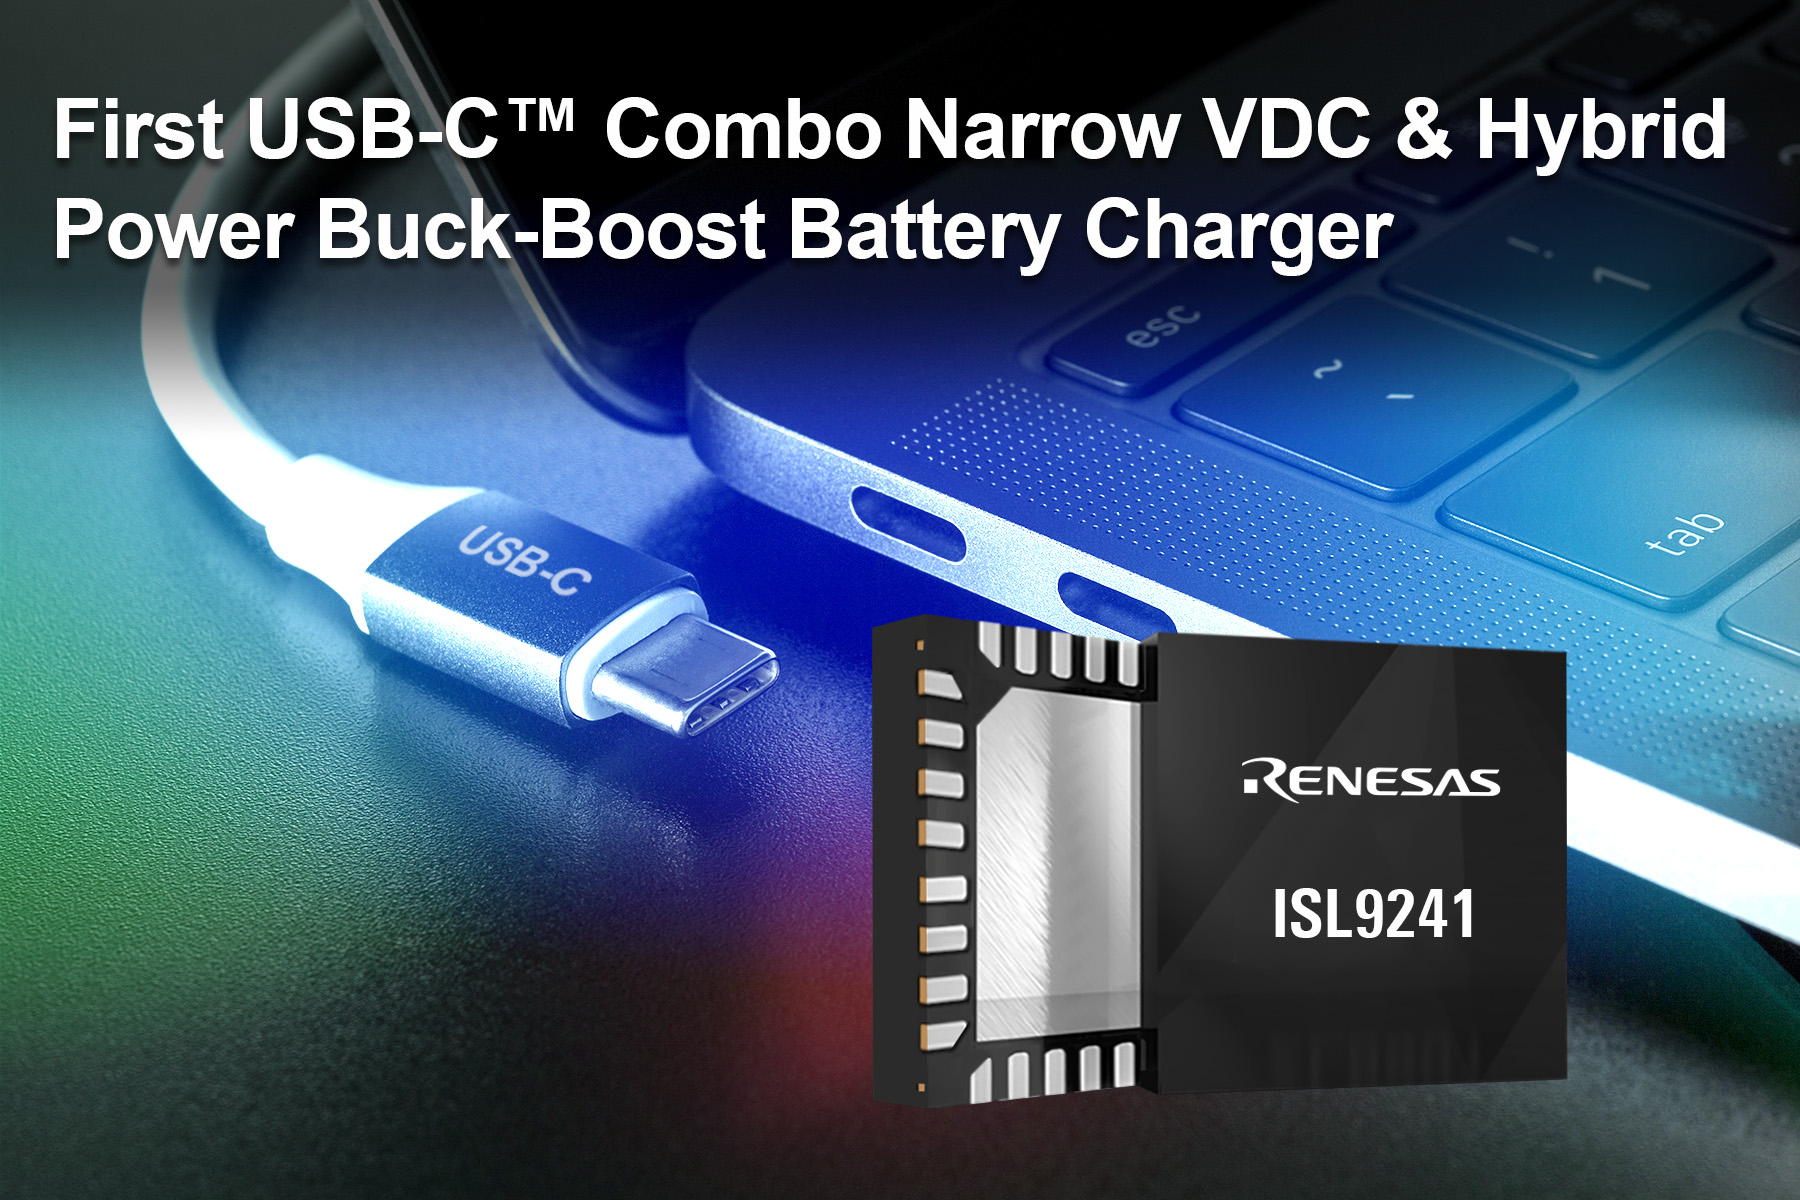 Combo Buck-Boost Battery Charger for Mobile Computing